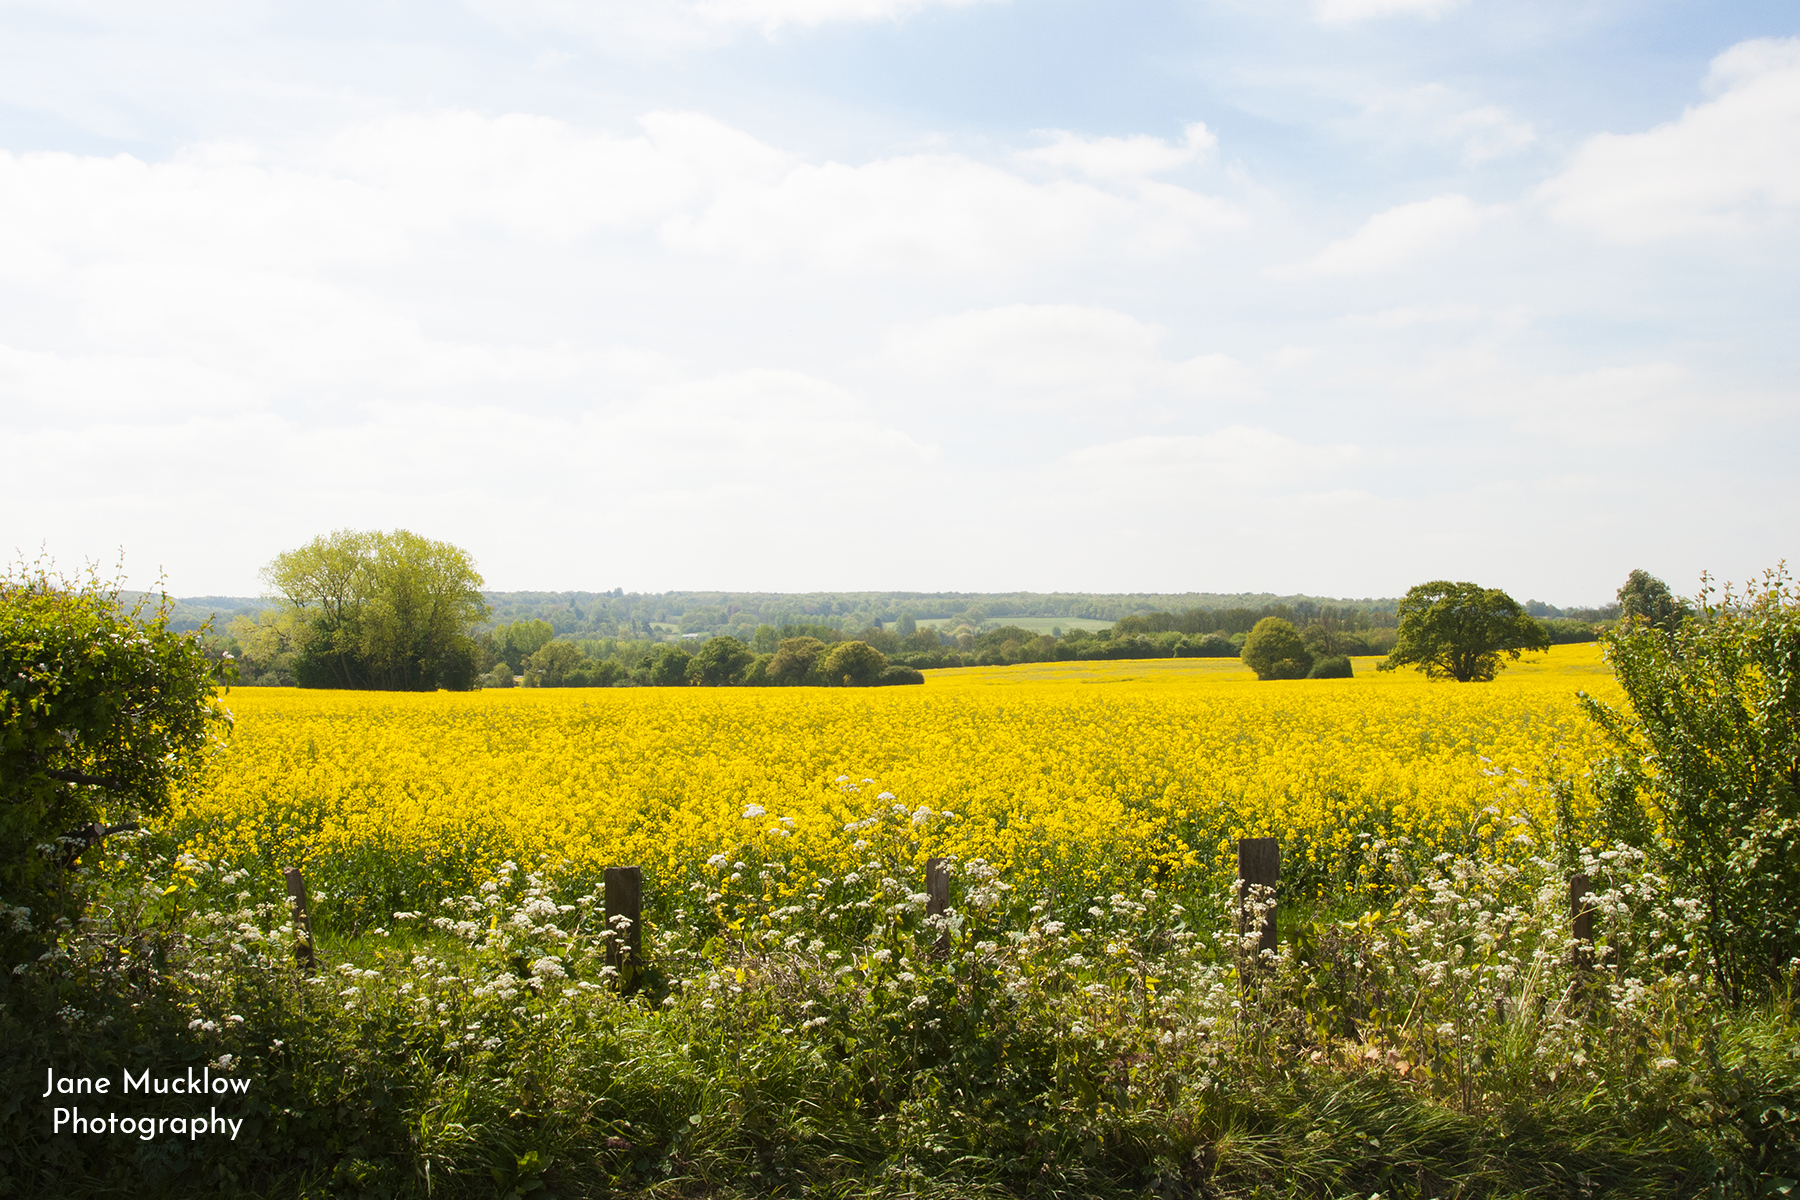 Photo by Jane Mucklow of the oilseed rape fields between Heaverham and Kemsing.